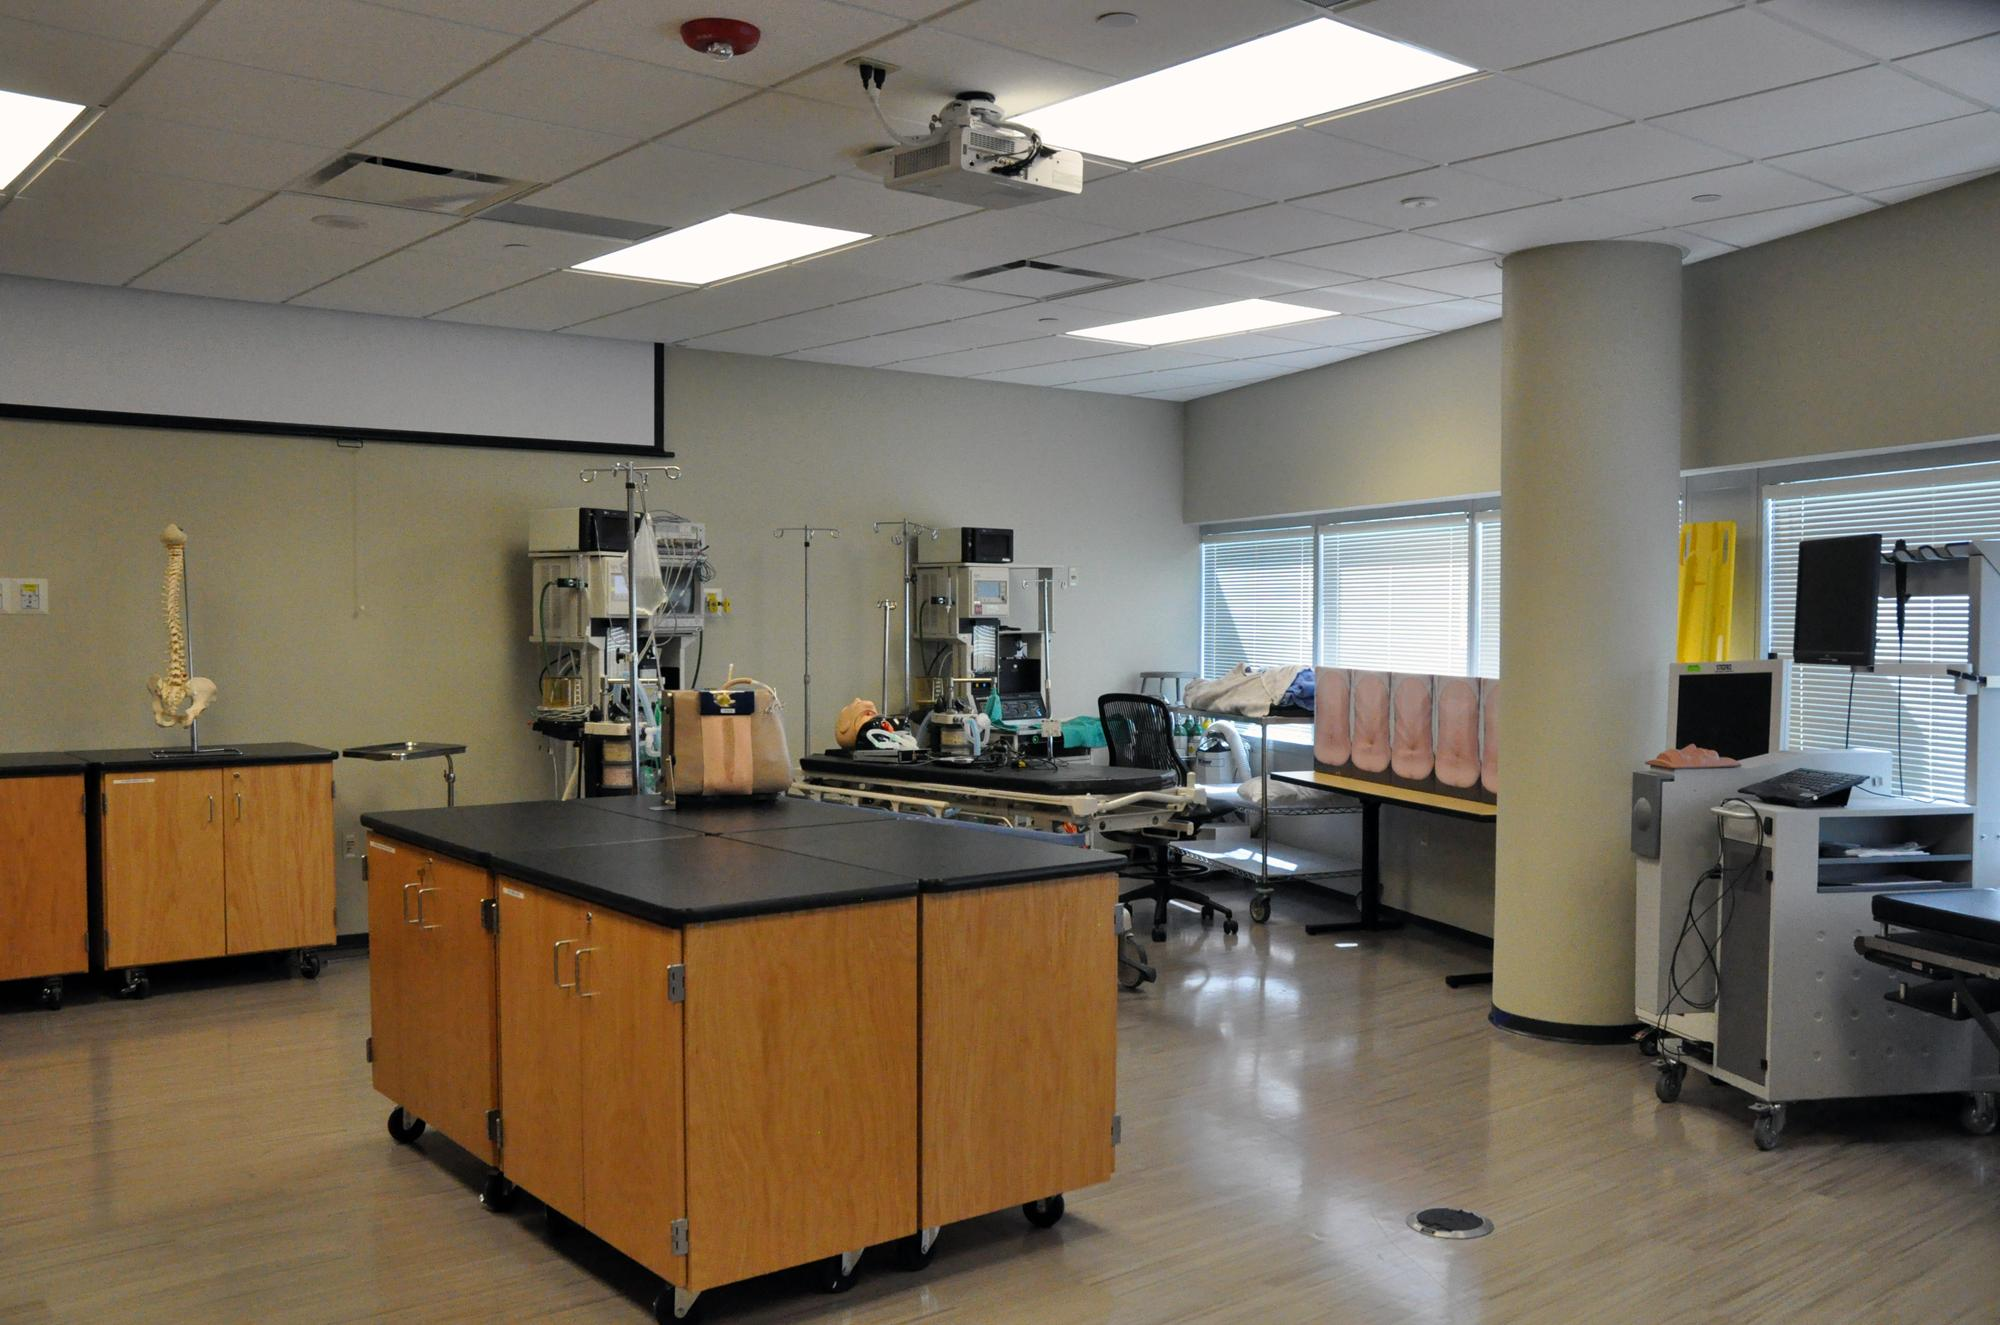 m s nurse anesthesia adu the nurse anesthesia skills lab is where our students can practice essential skills necessary for becoming certified registered nurse anesthetists